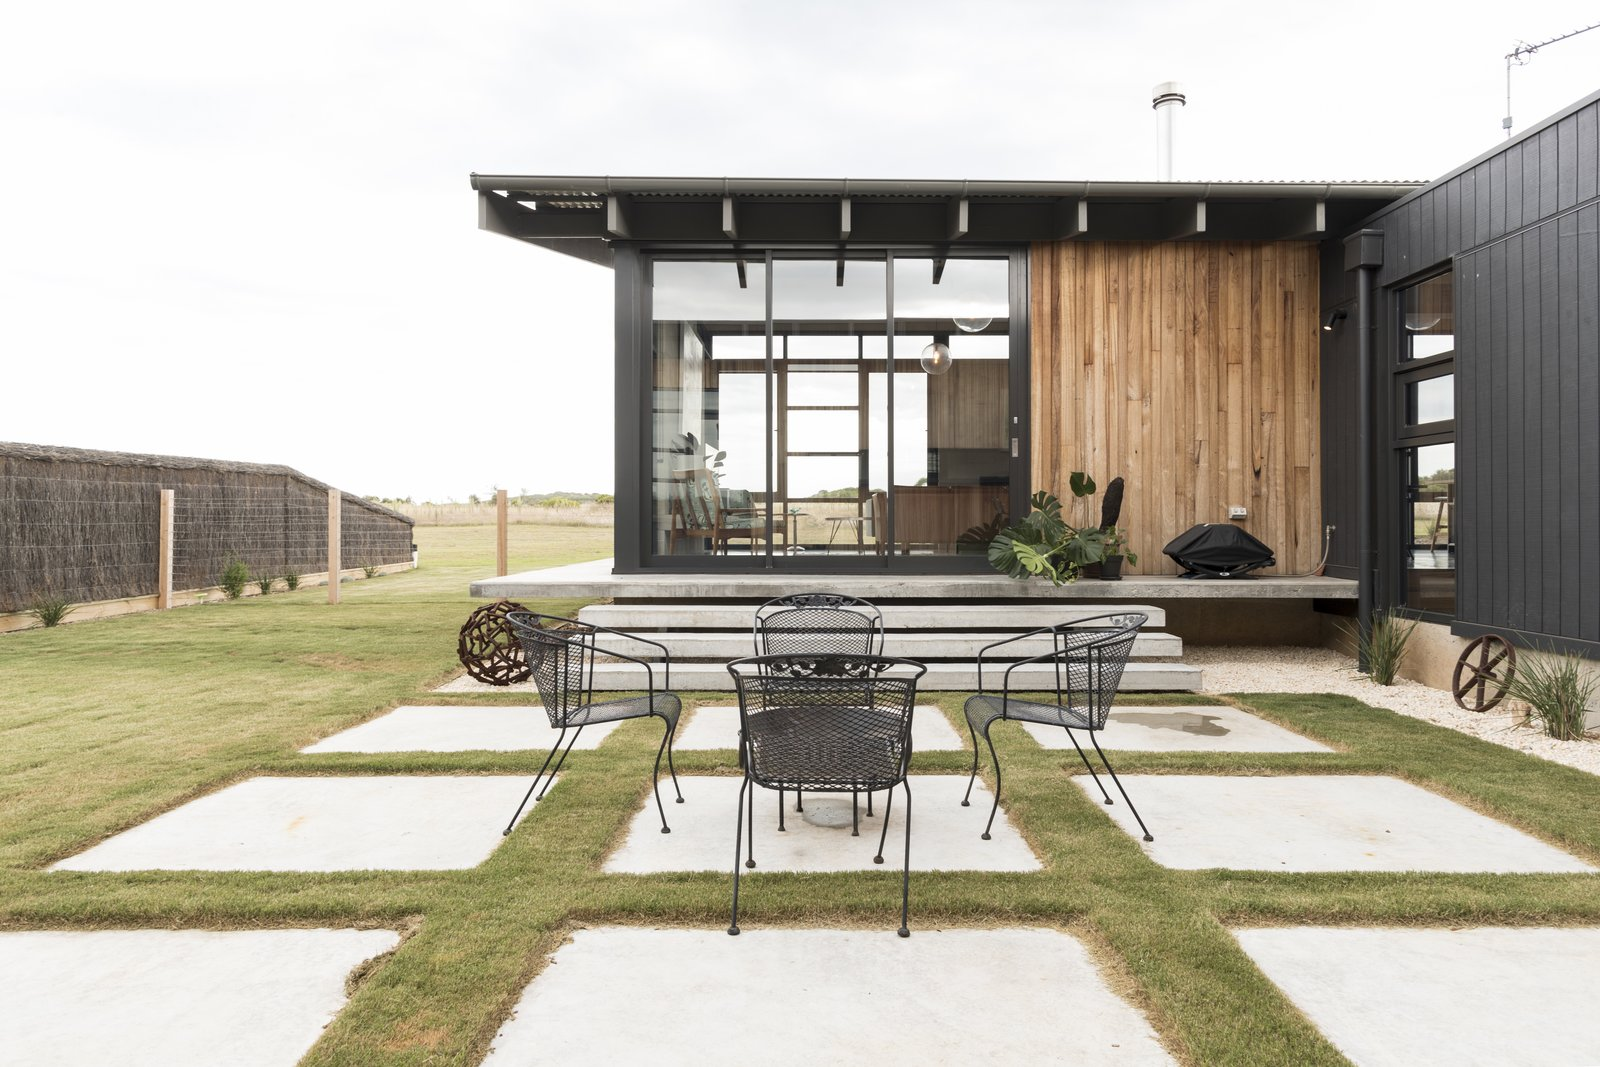 Outdoor, Grass, Concrete Patio, Porch, Deck, Side Yard, Wire Fences, Wall, Large Patio, Porch, Deck, Horizontal Fences, Wall, and Pavers Patio, Porch, Deck Courtyard   The Golf Course House by Bespoke Architects